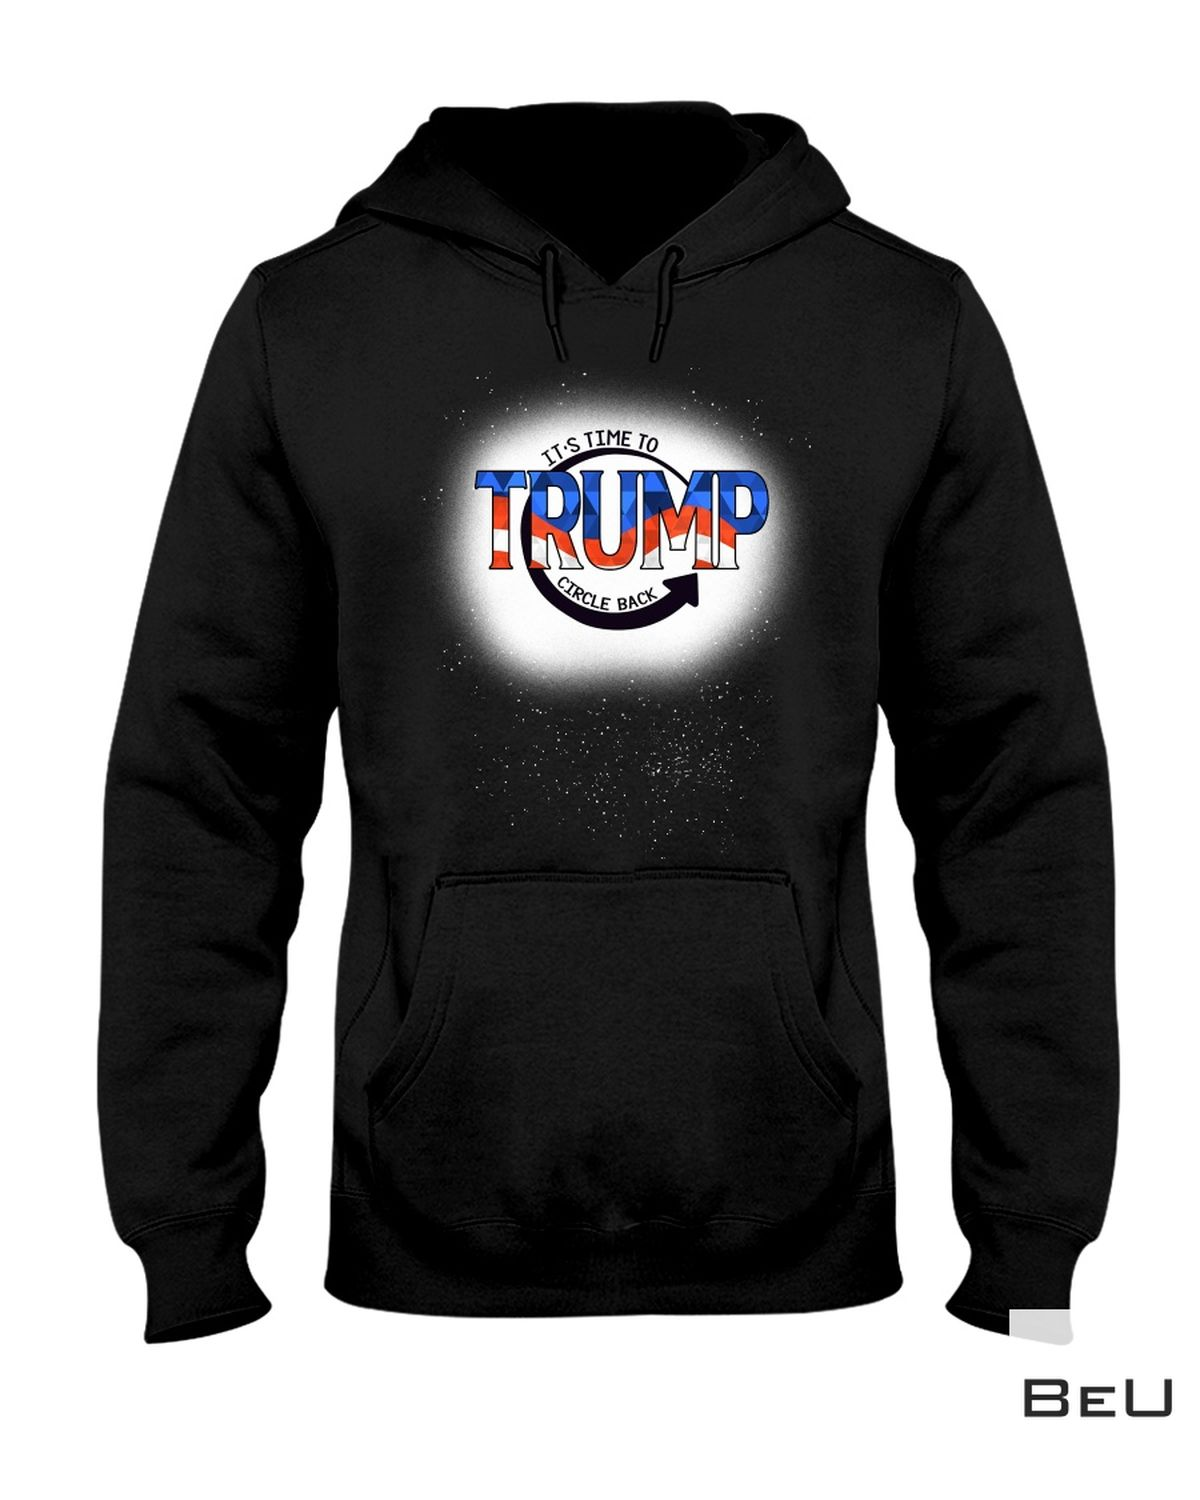 Adult It's Time To Trump Circle Back Shirt, hoodie